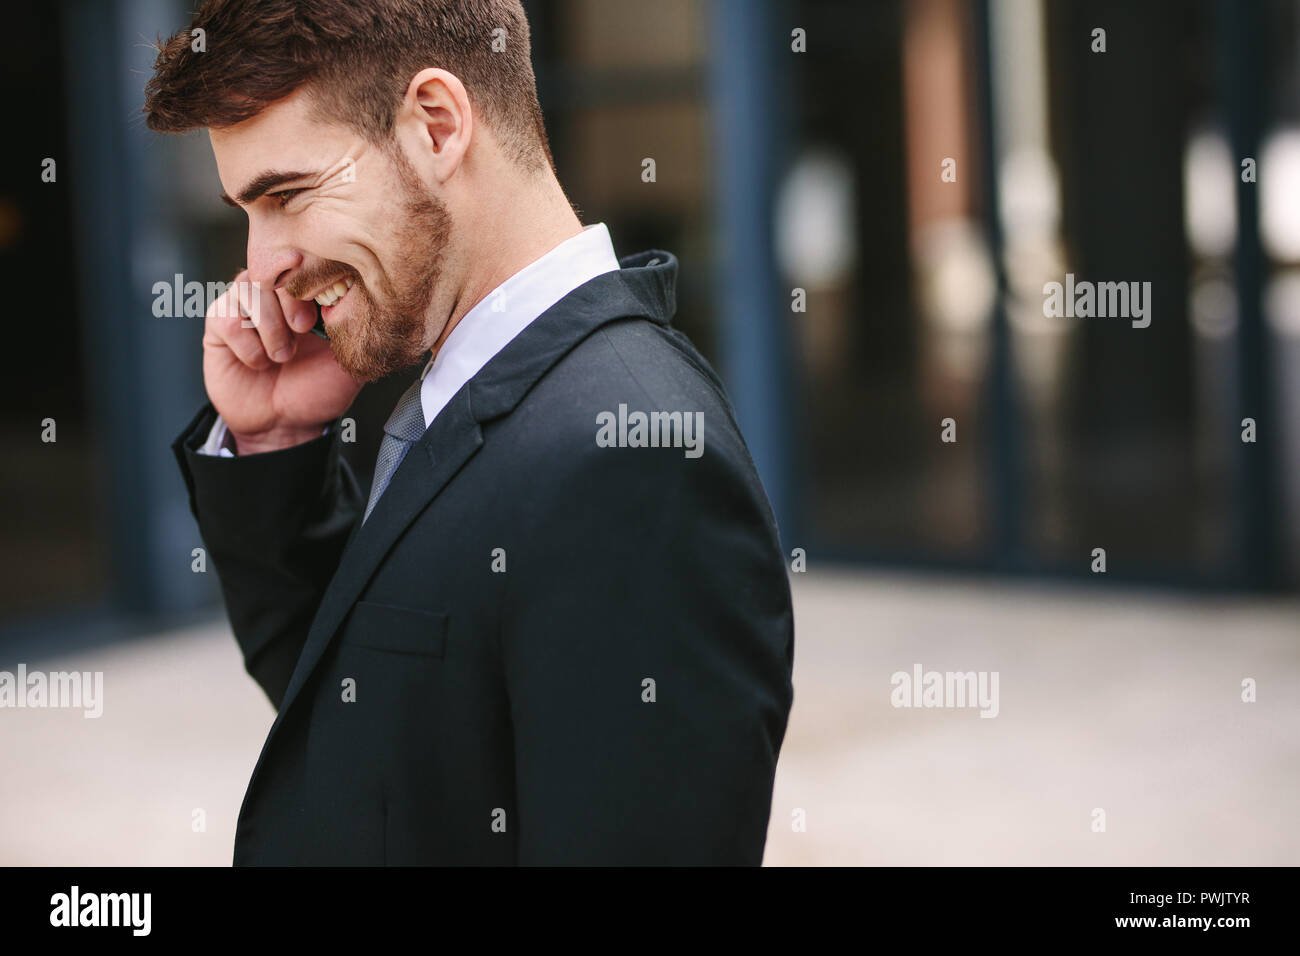 Smiling businessman talking over cell phone. Side view of